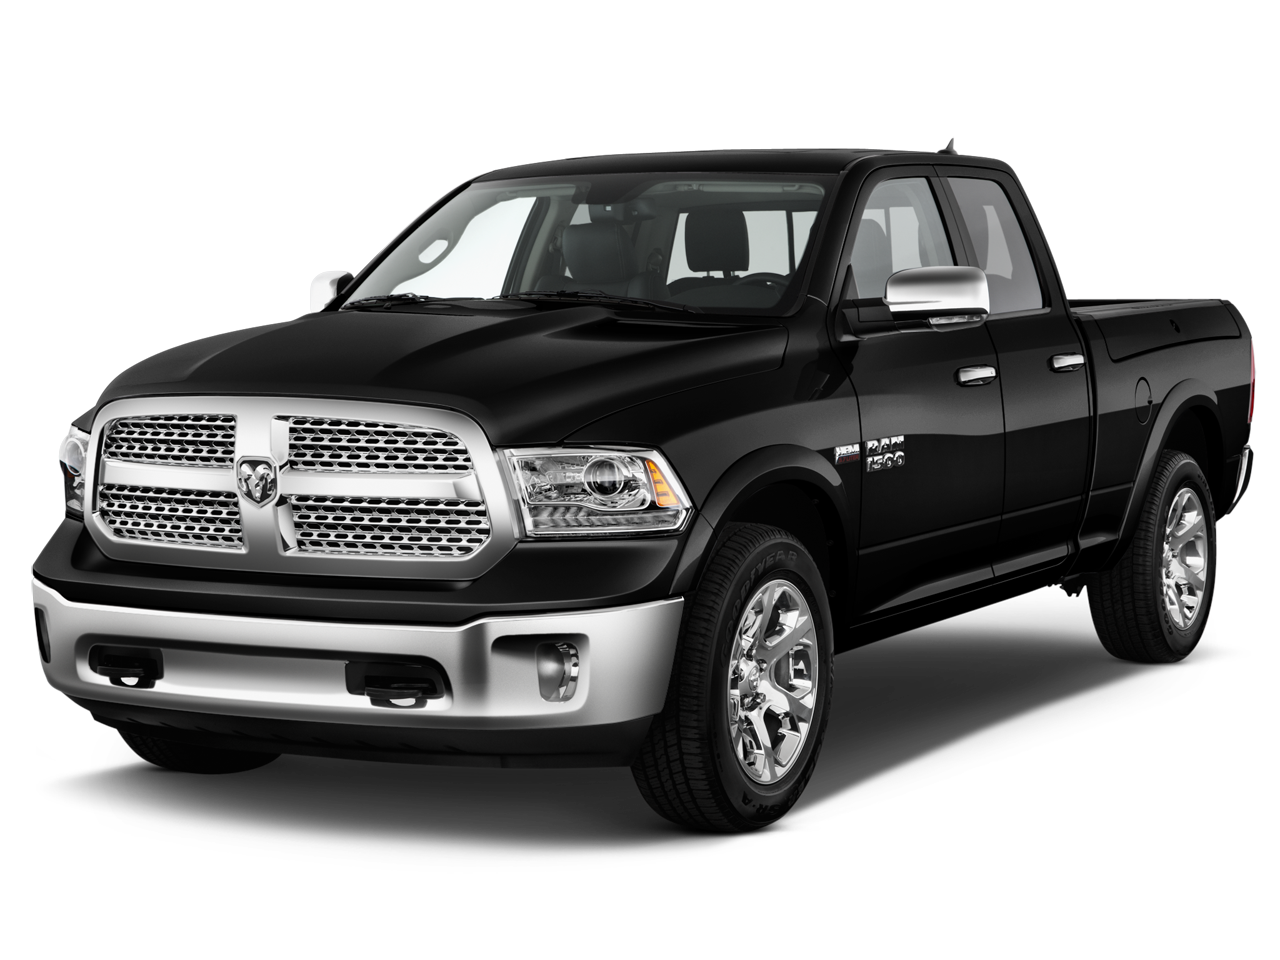 Used 2017 Ram 1500 - Pikeville KY - Walters Nissan